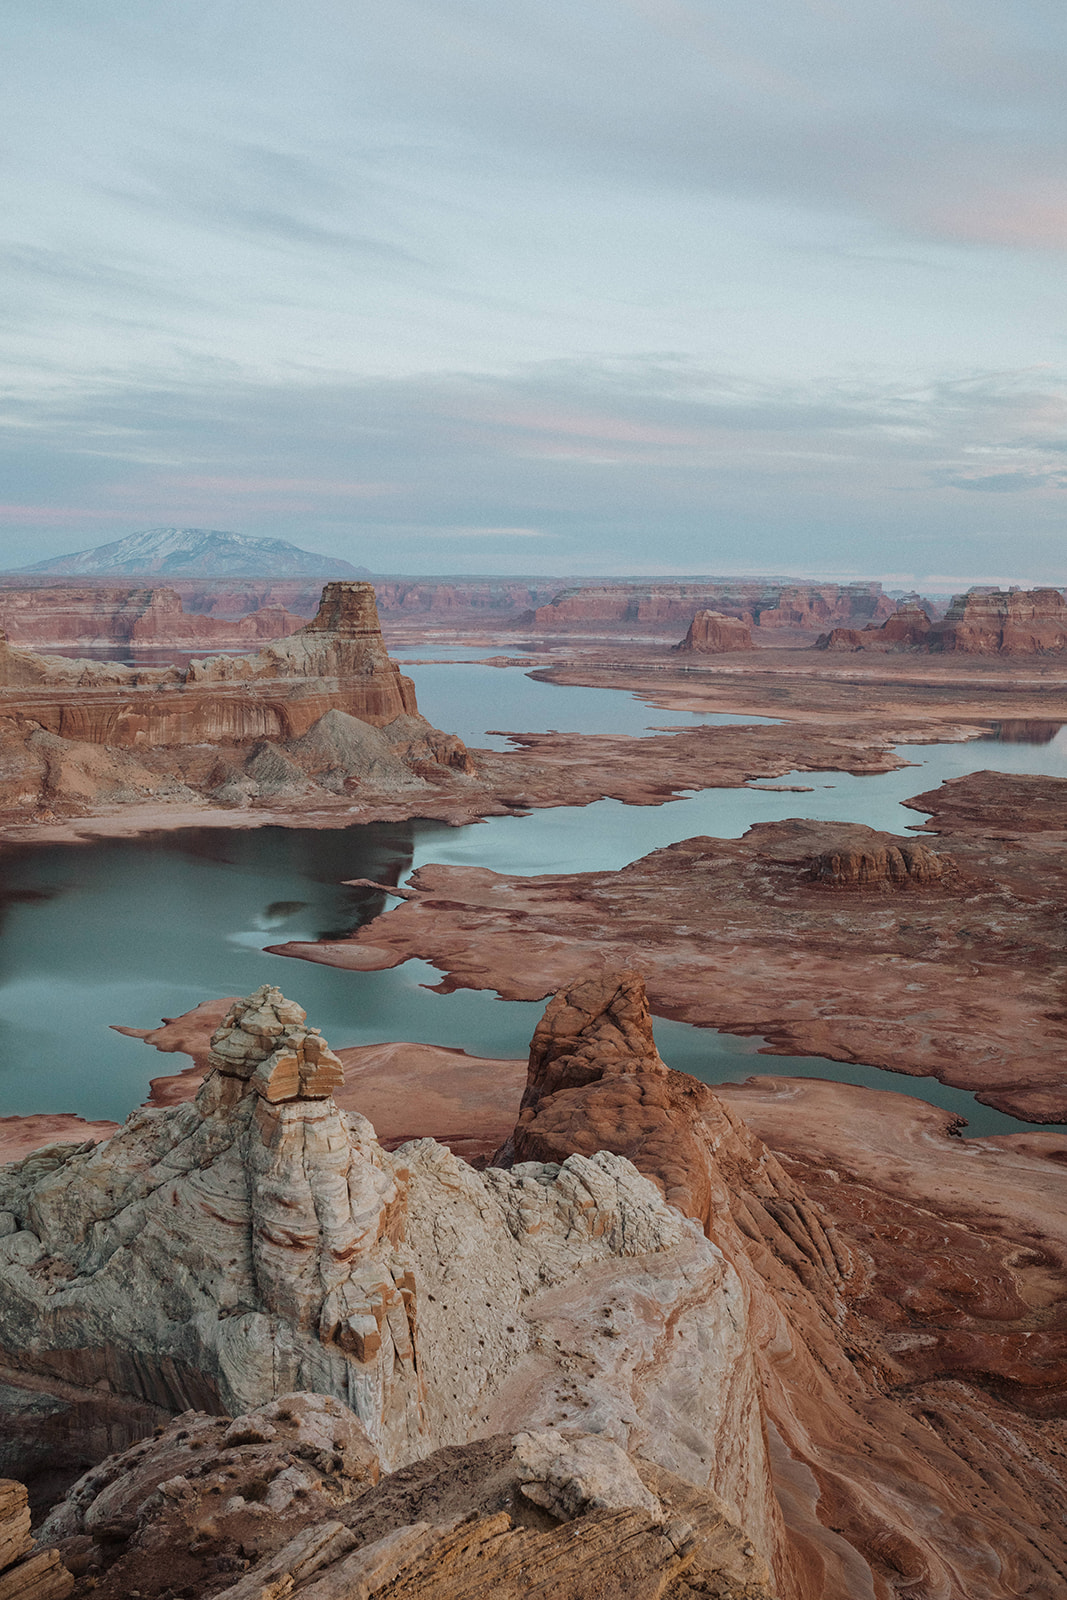 An image of the desert cliffs and canyons of Lake Powell by Alexa Ann, an elopement photographer.